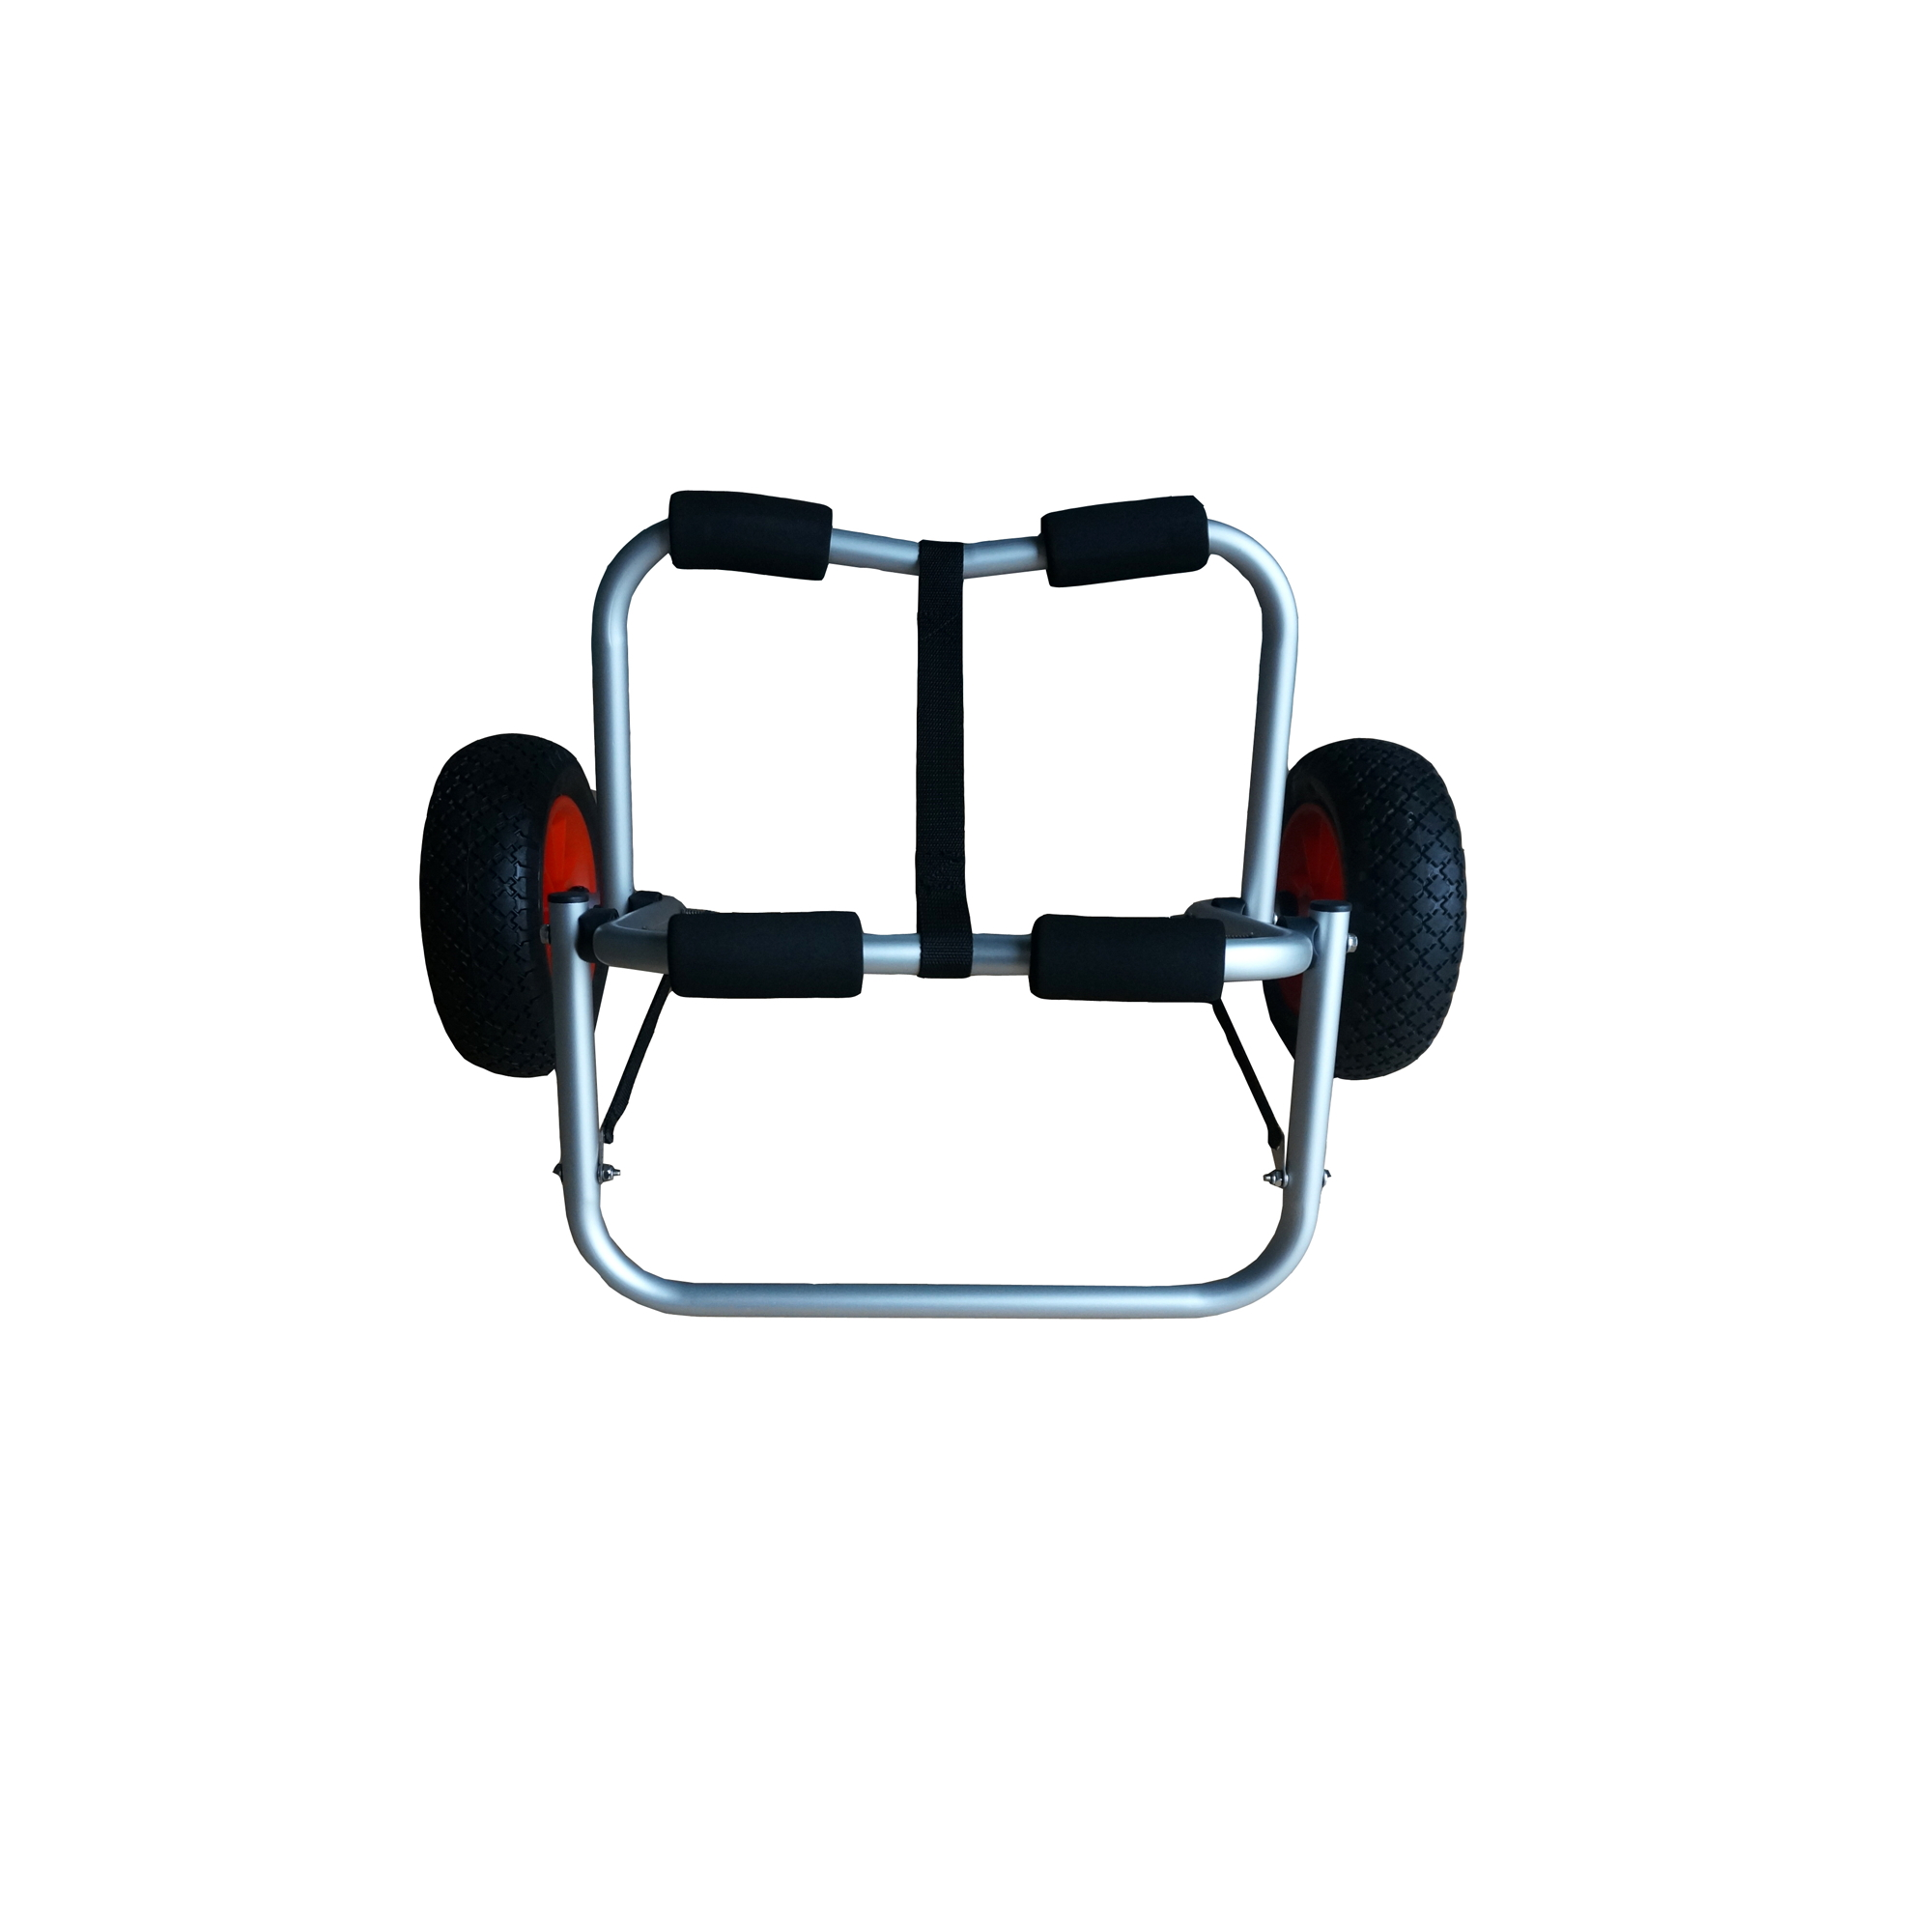 China Factory for Lldpe Single Seat Fishing Kayak -